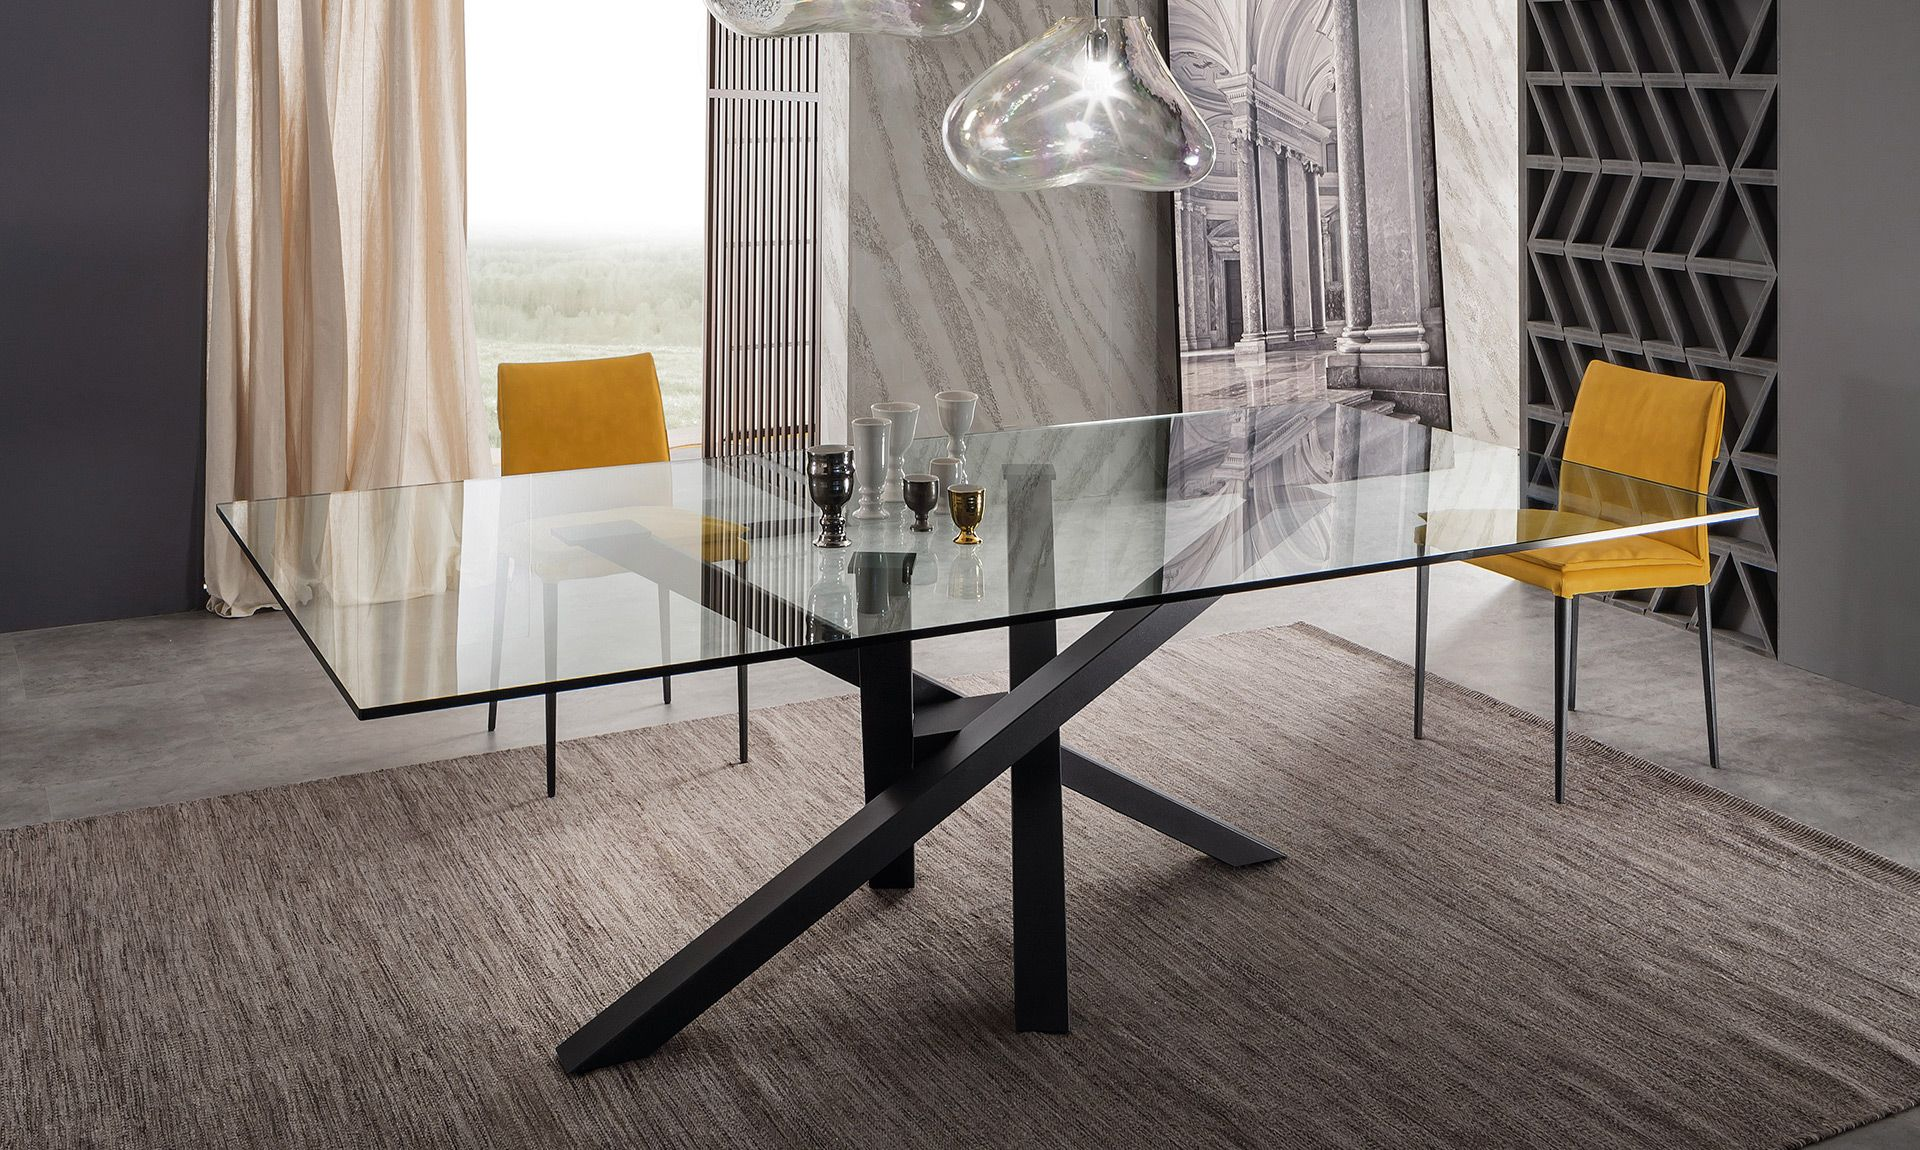 Tavolo shangai cristallo riflessi luci ok table for Scrivania cristallo design